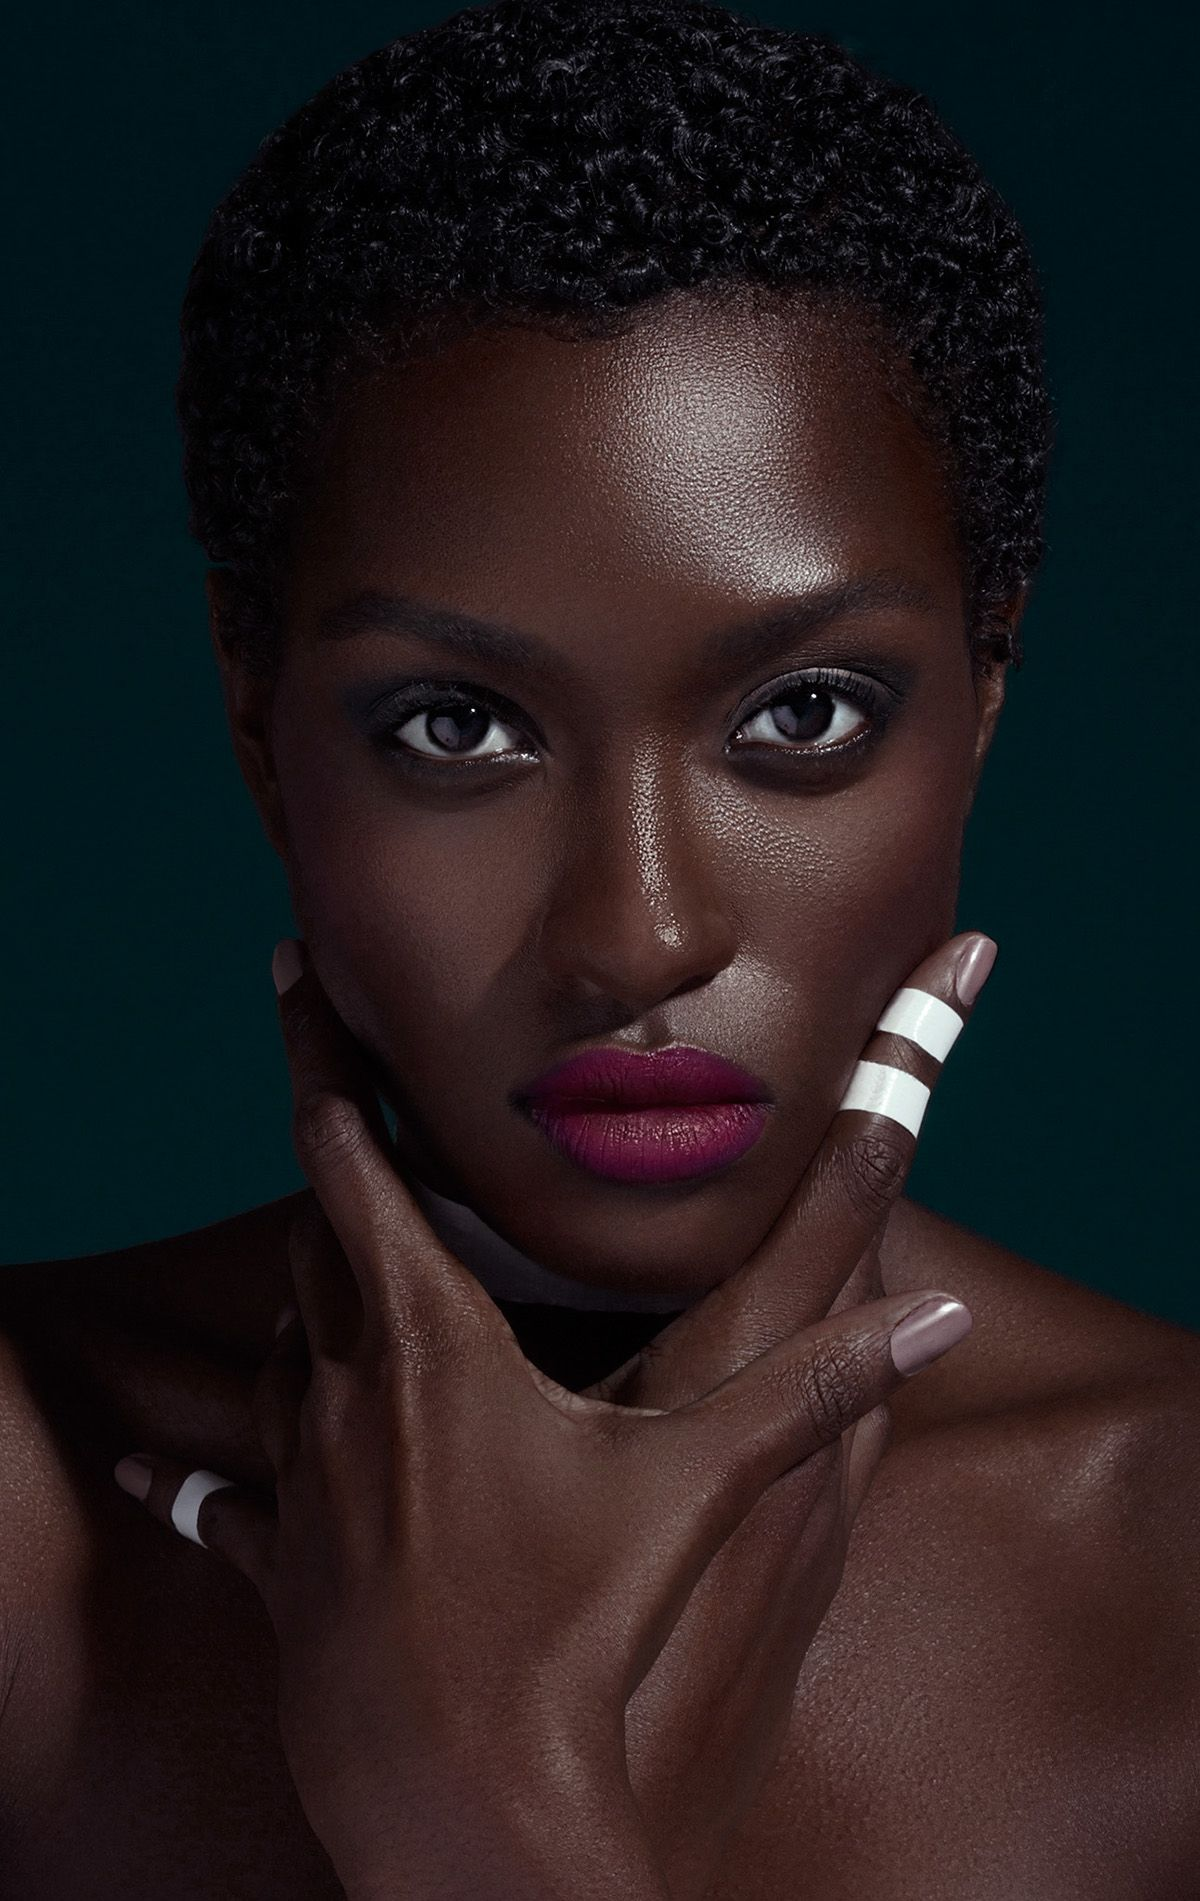 darkskin fashionmodel nude 1000+ ideas about Dark Skin on Pinterest | Dark Skinned Women, Natural Hair and Makeup